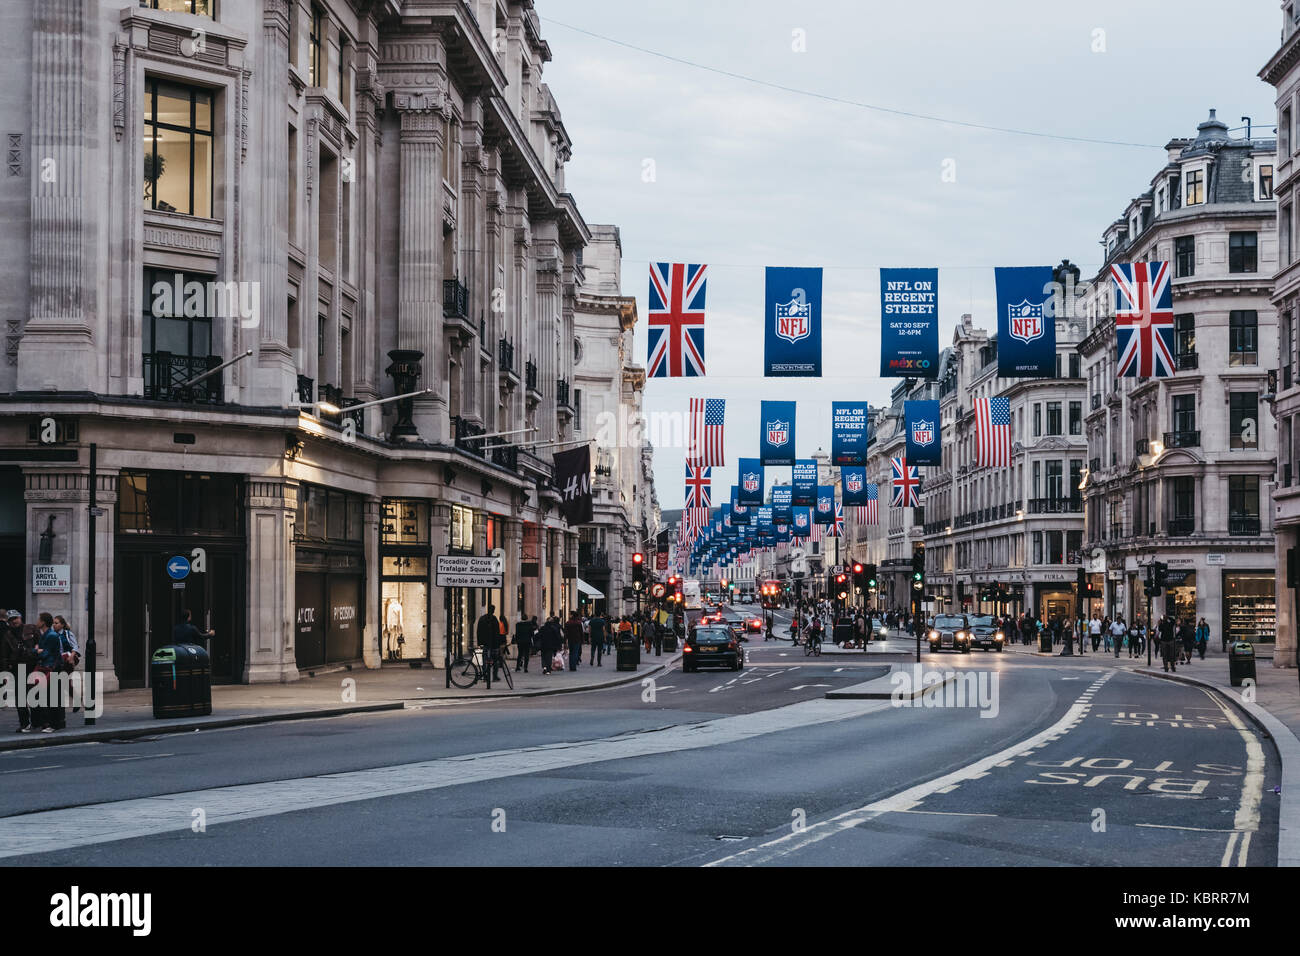 View of Regent Street, London at dusk. The street is decorated with NFL flags to celebrate the event and four NFL - Stock Image